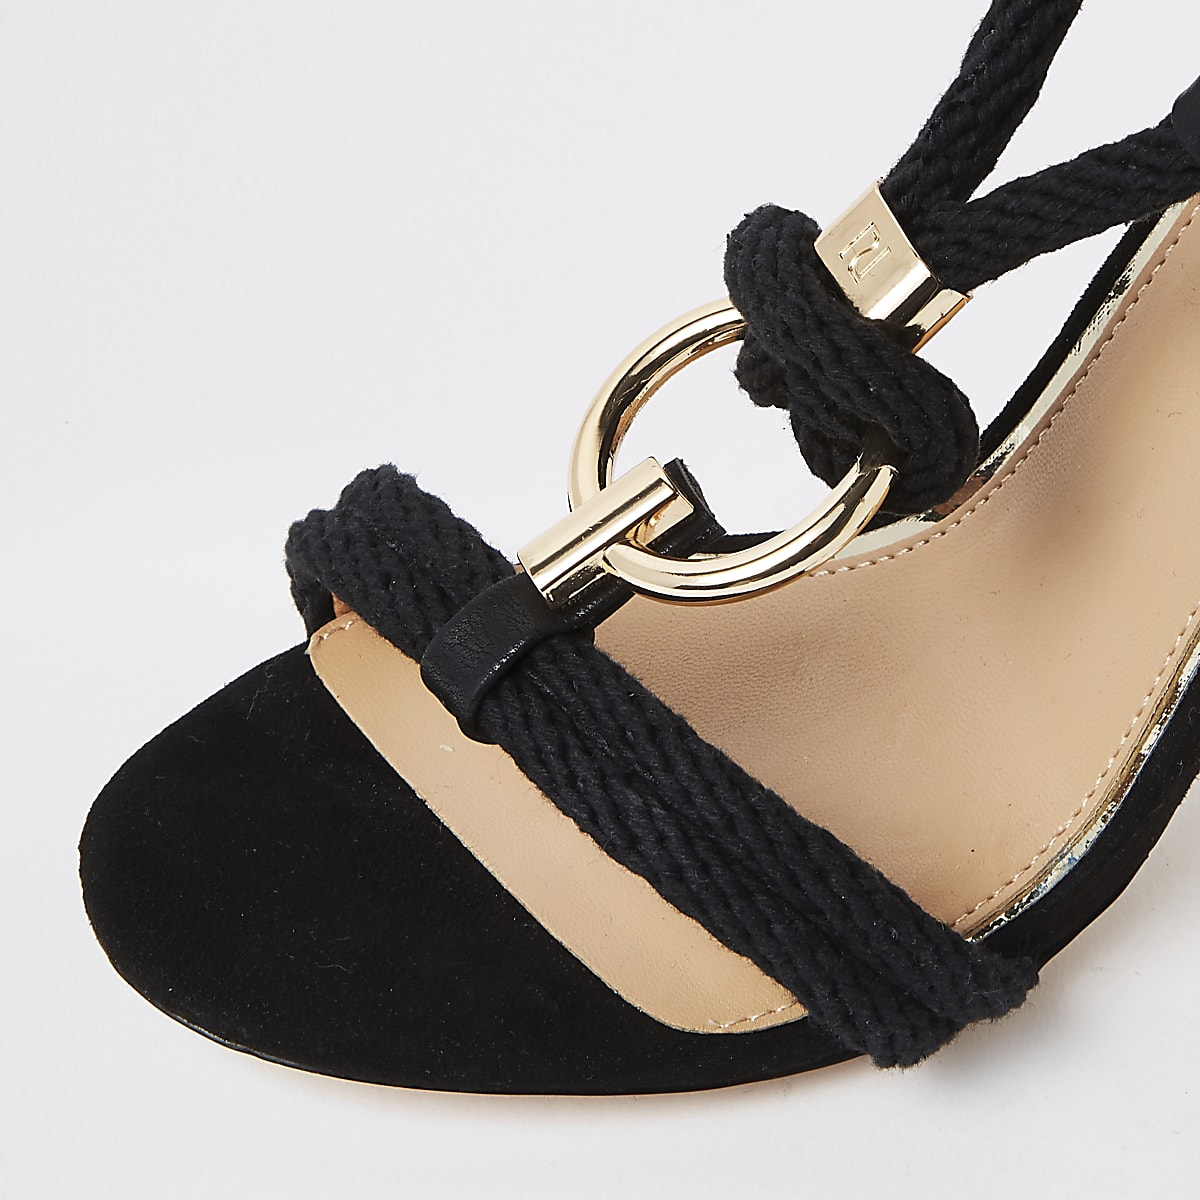 05db1de7ad7 Black rope ring stiletto heel sandals - Sandals - Shoes   Boots - women